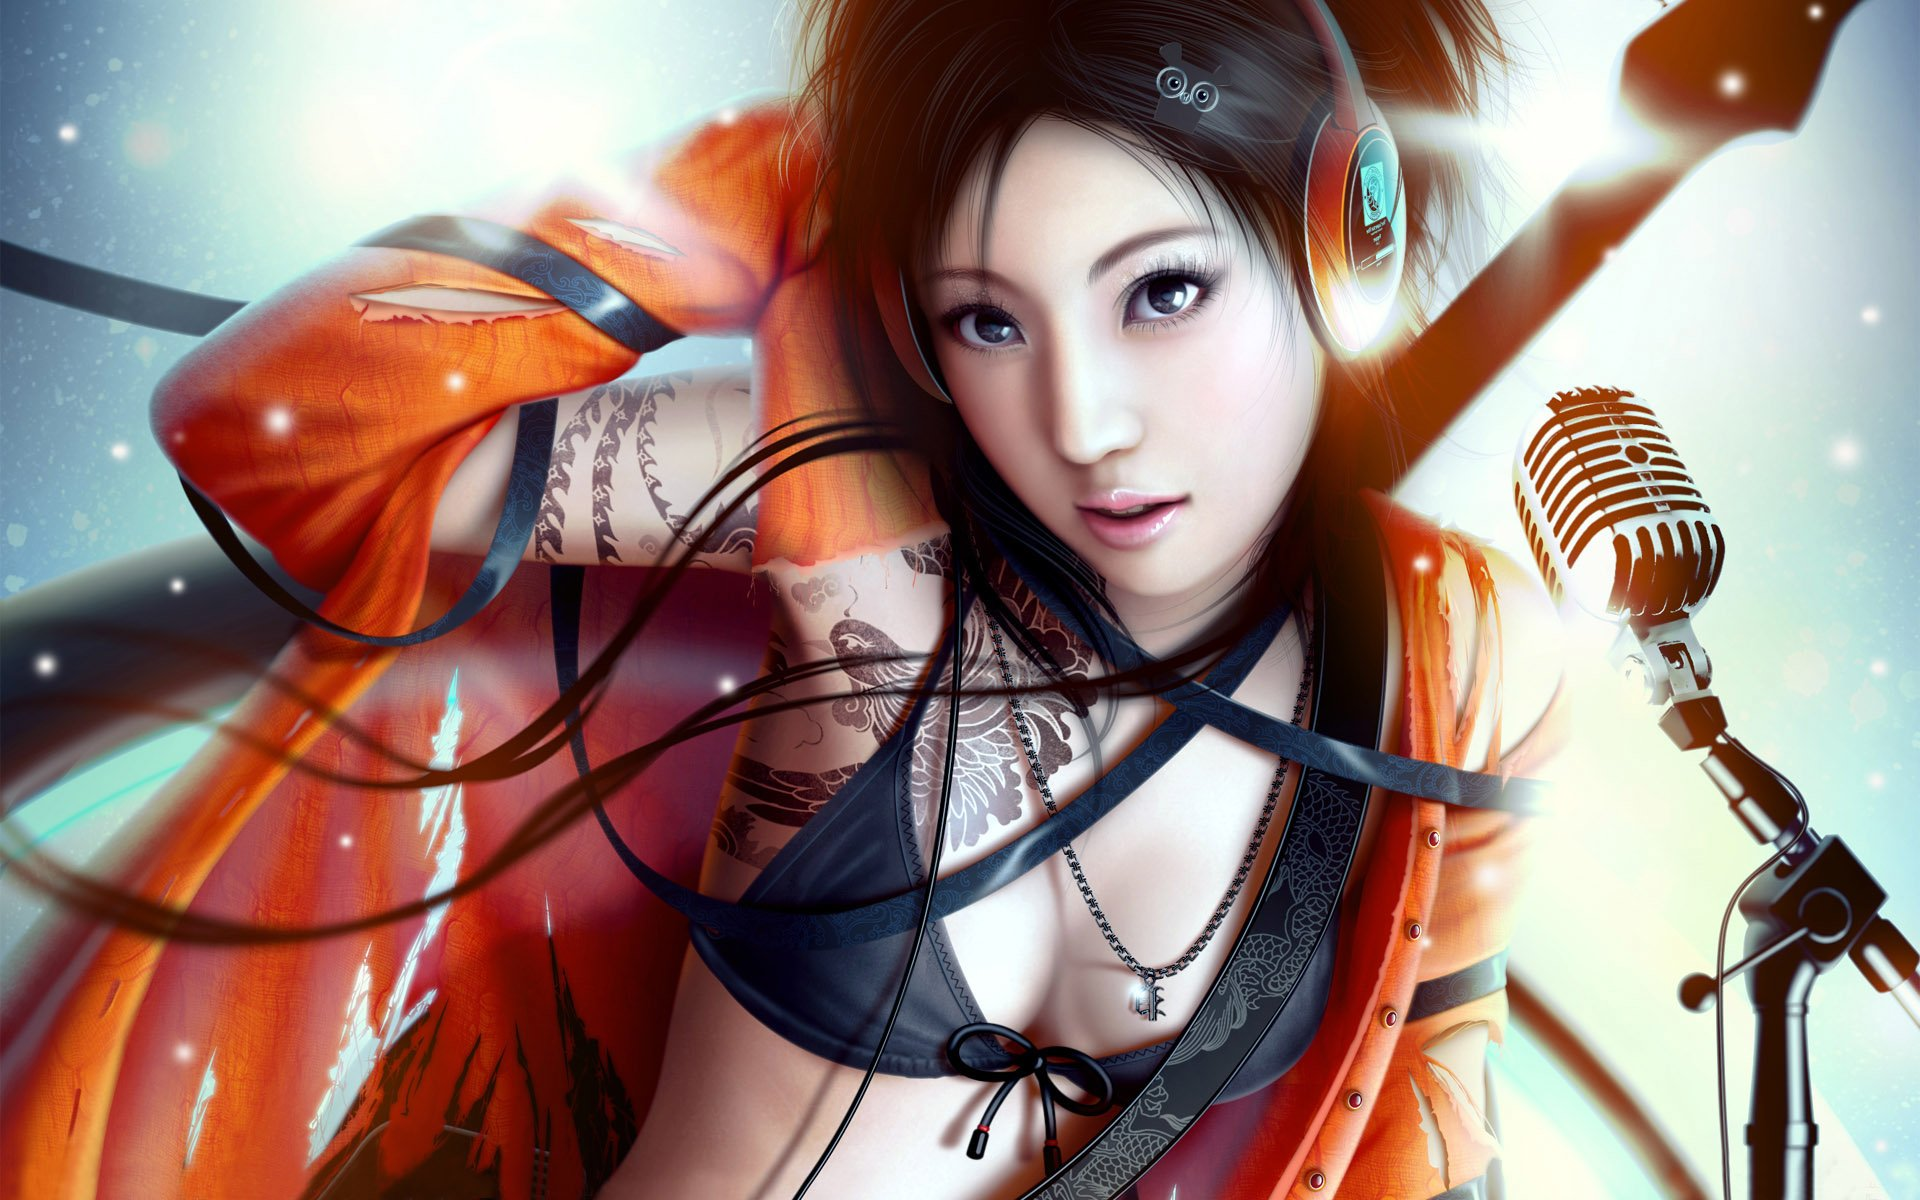 CGI - Women  CGI Woman Orange Cute Asian Music Wallpaper